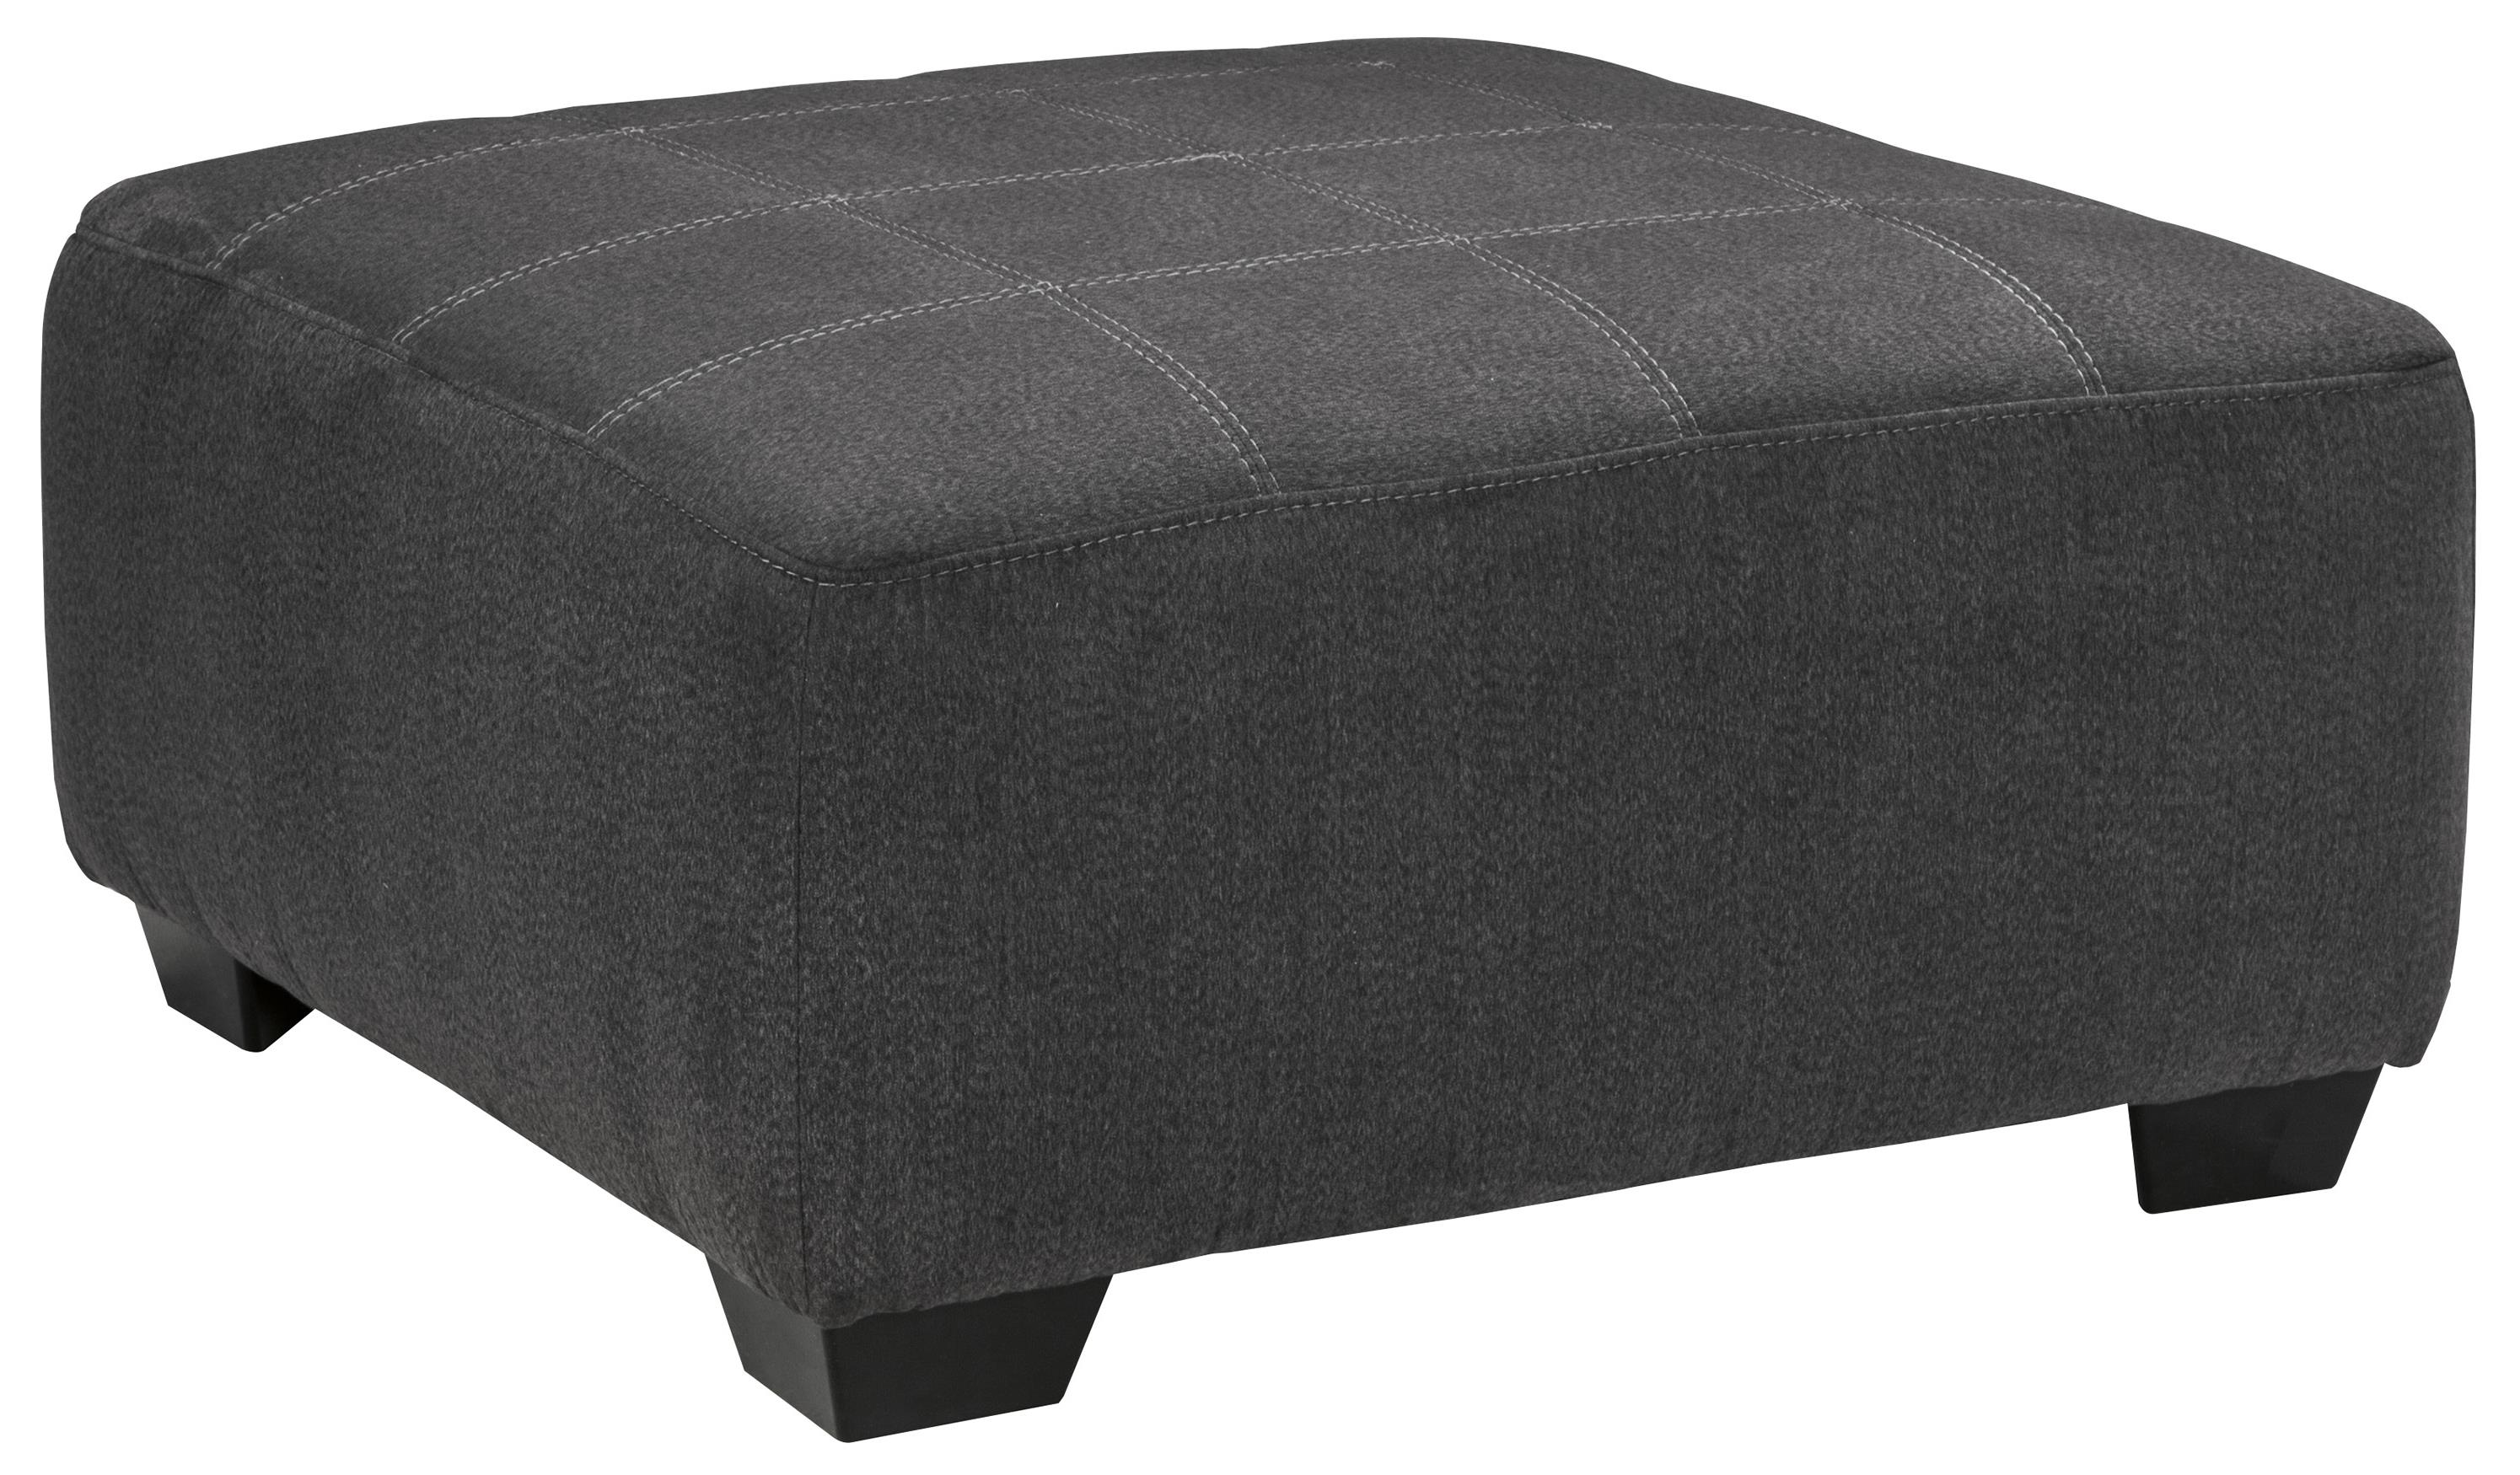 Benchcraft Sorenton Oversized Accent Ottoman - Item Number: 2860008